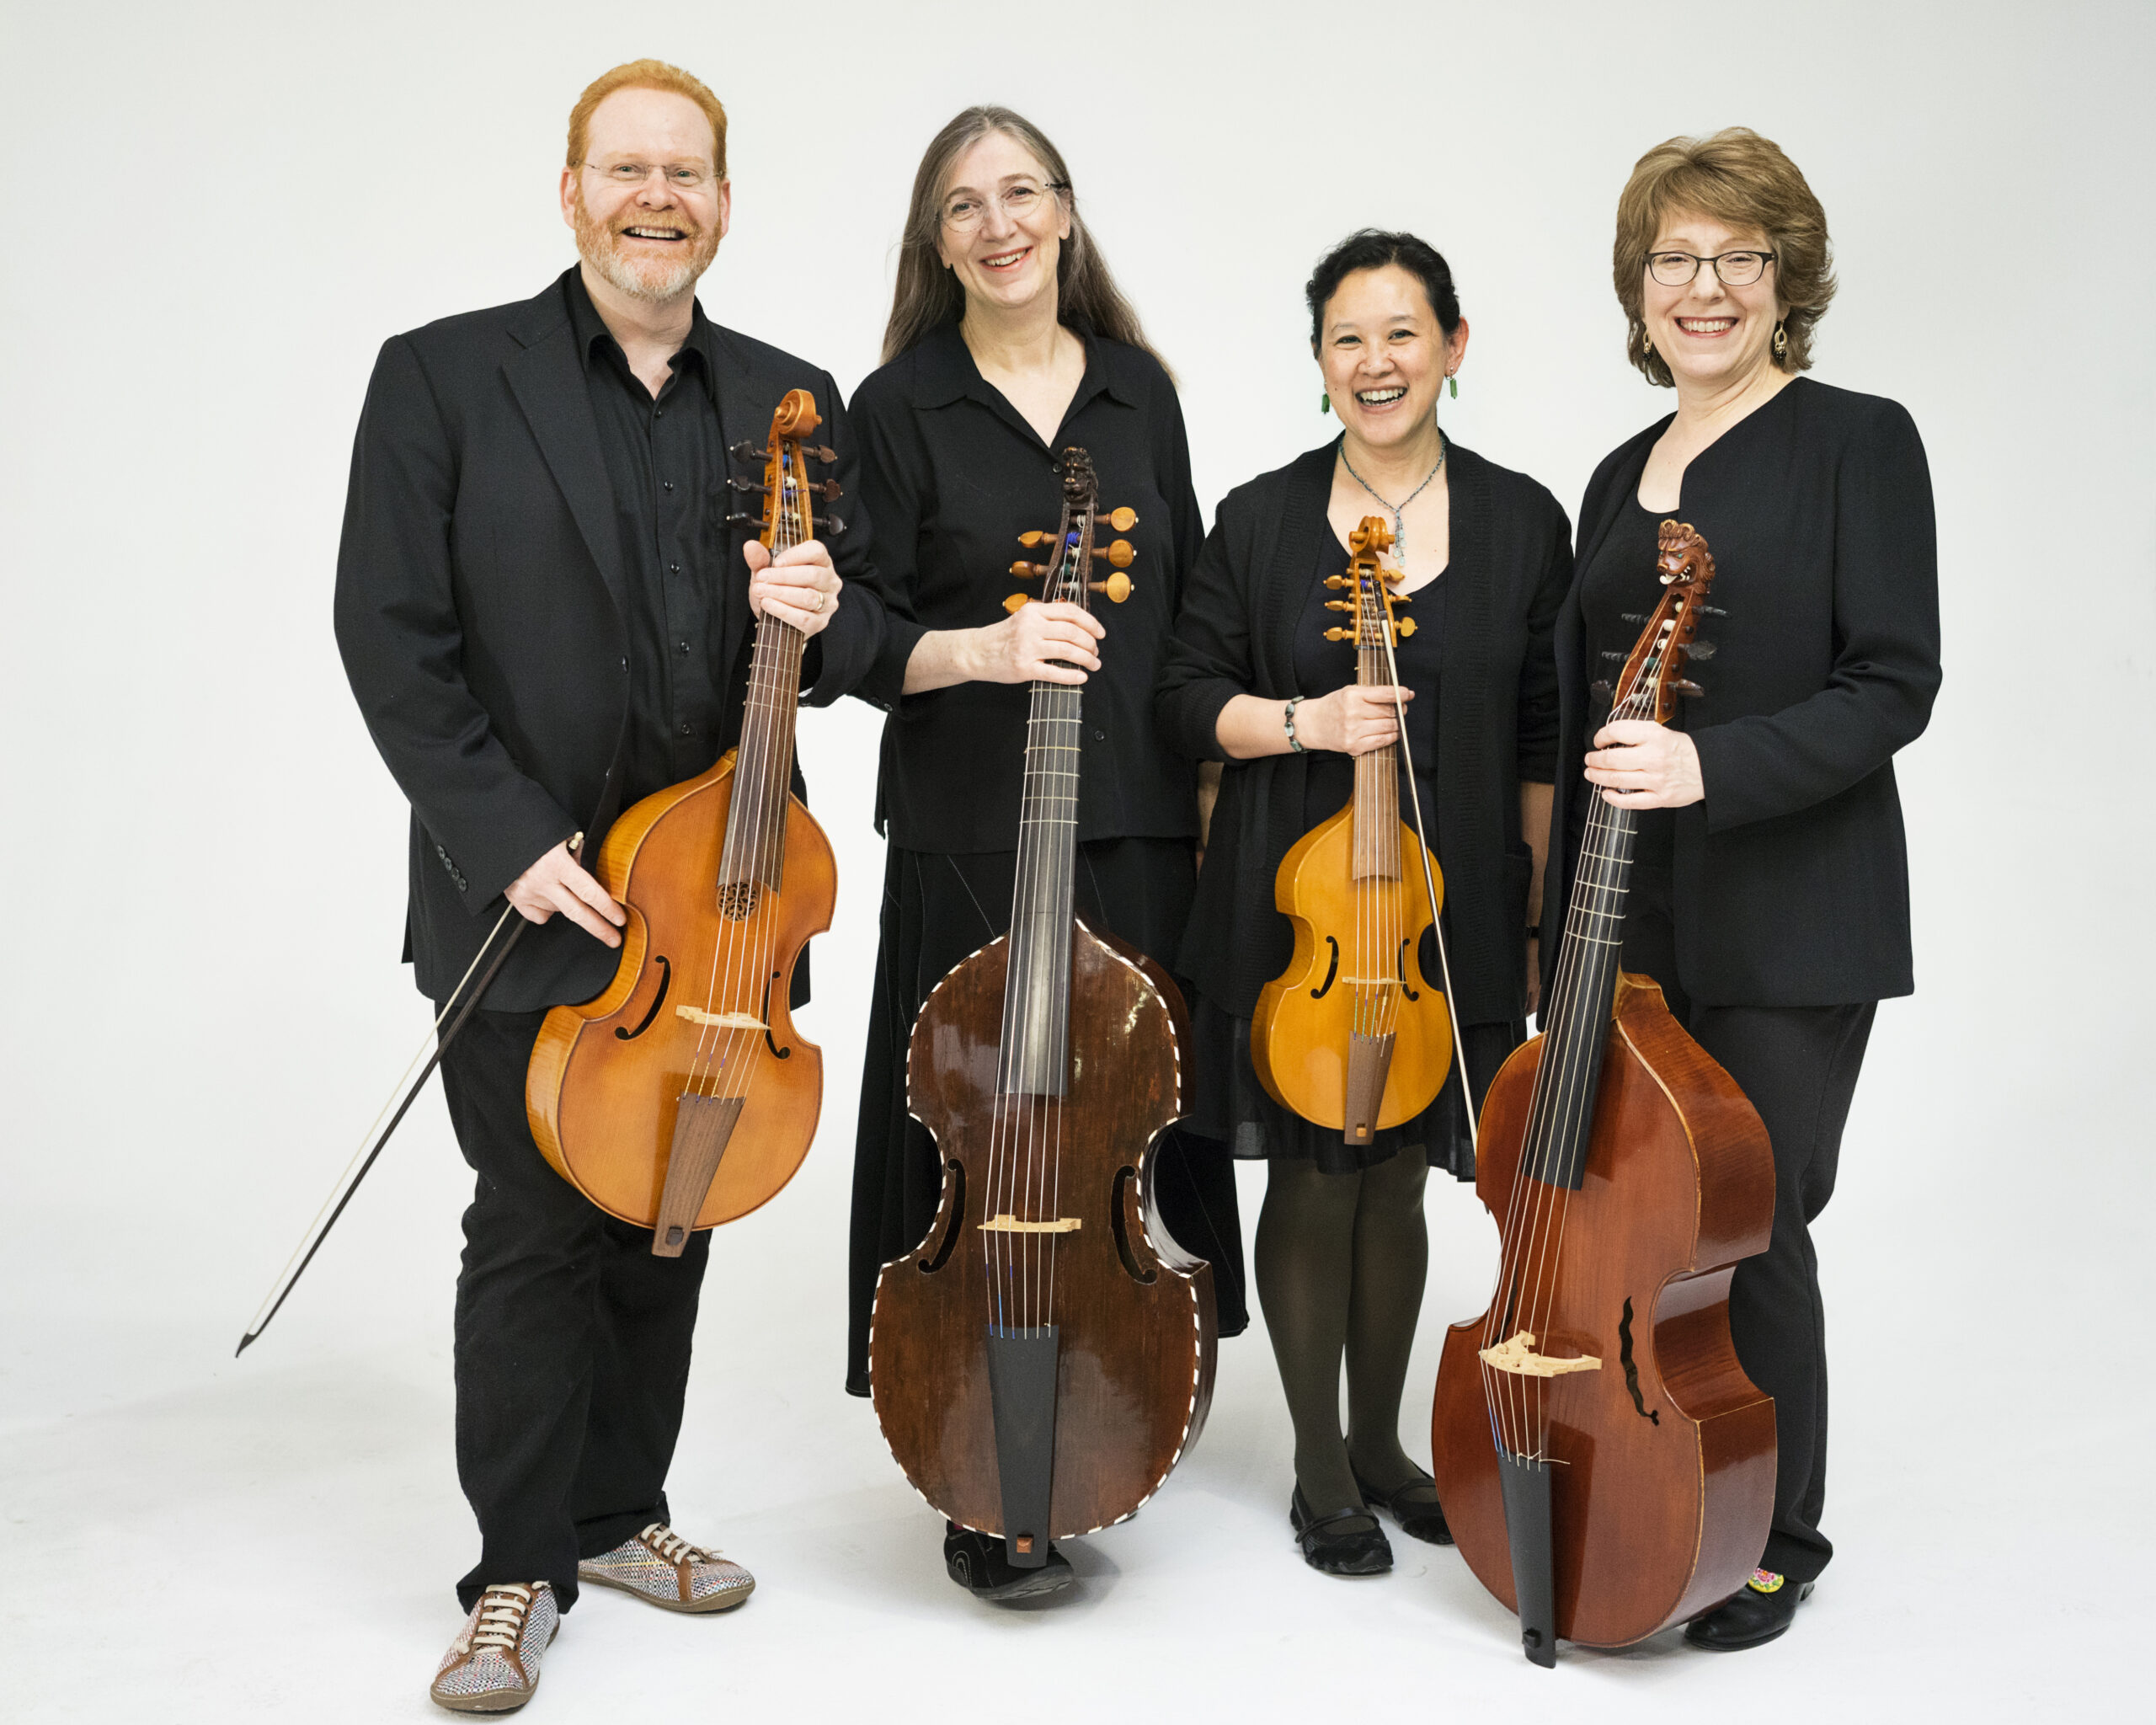 Parthenia musicians pose together with their instruments